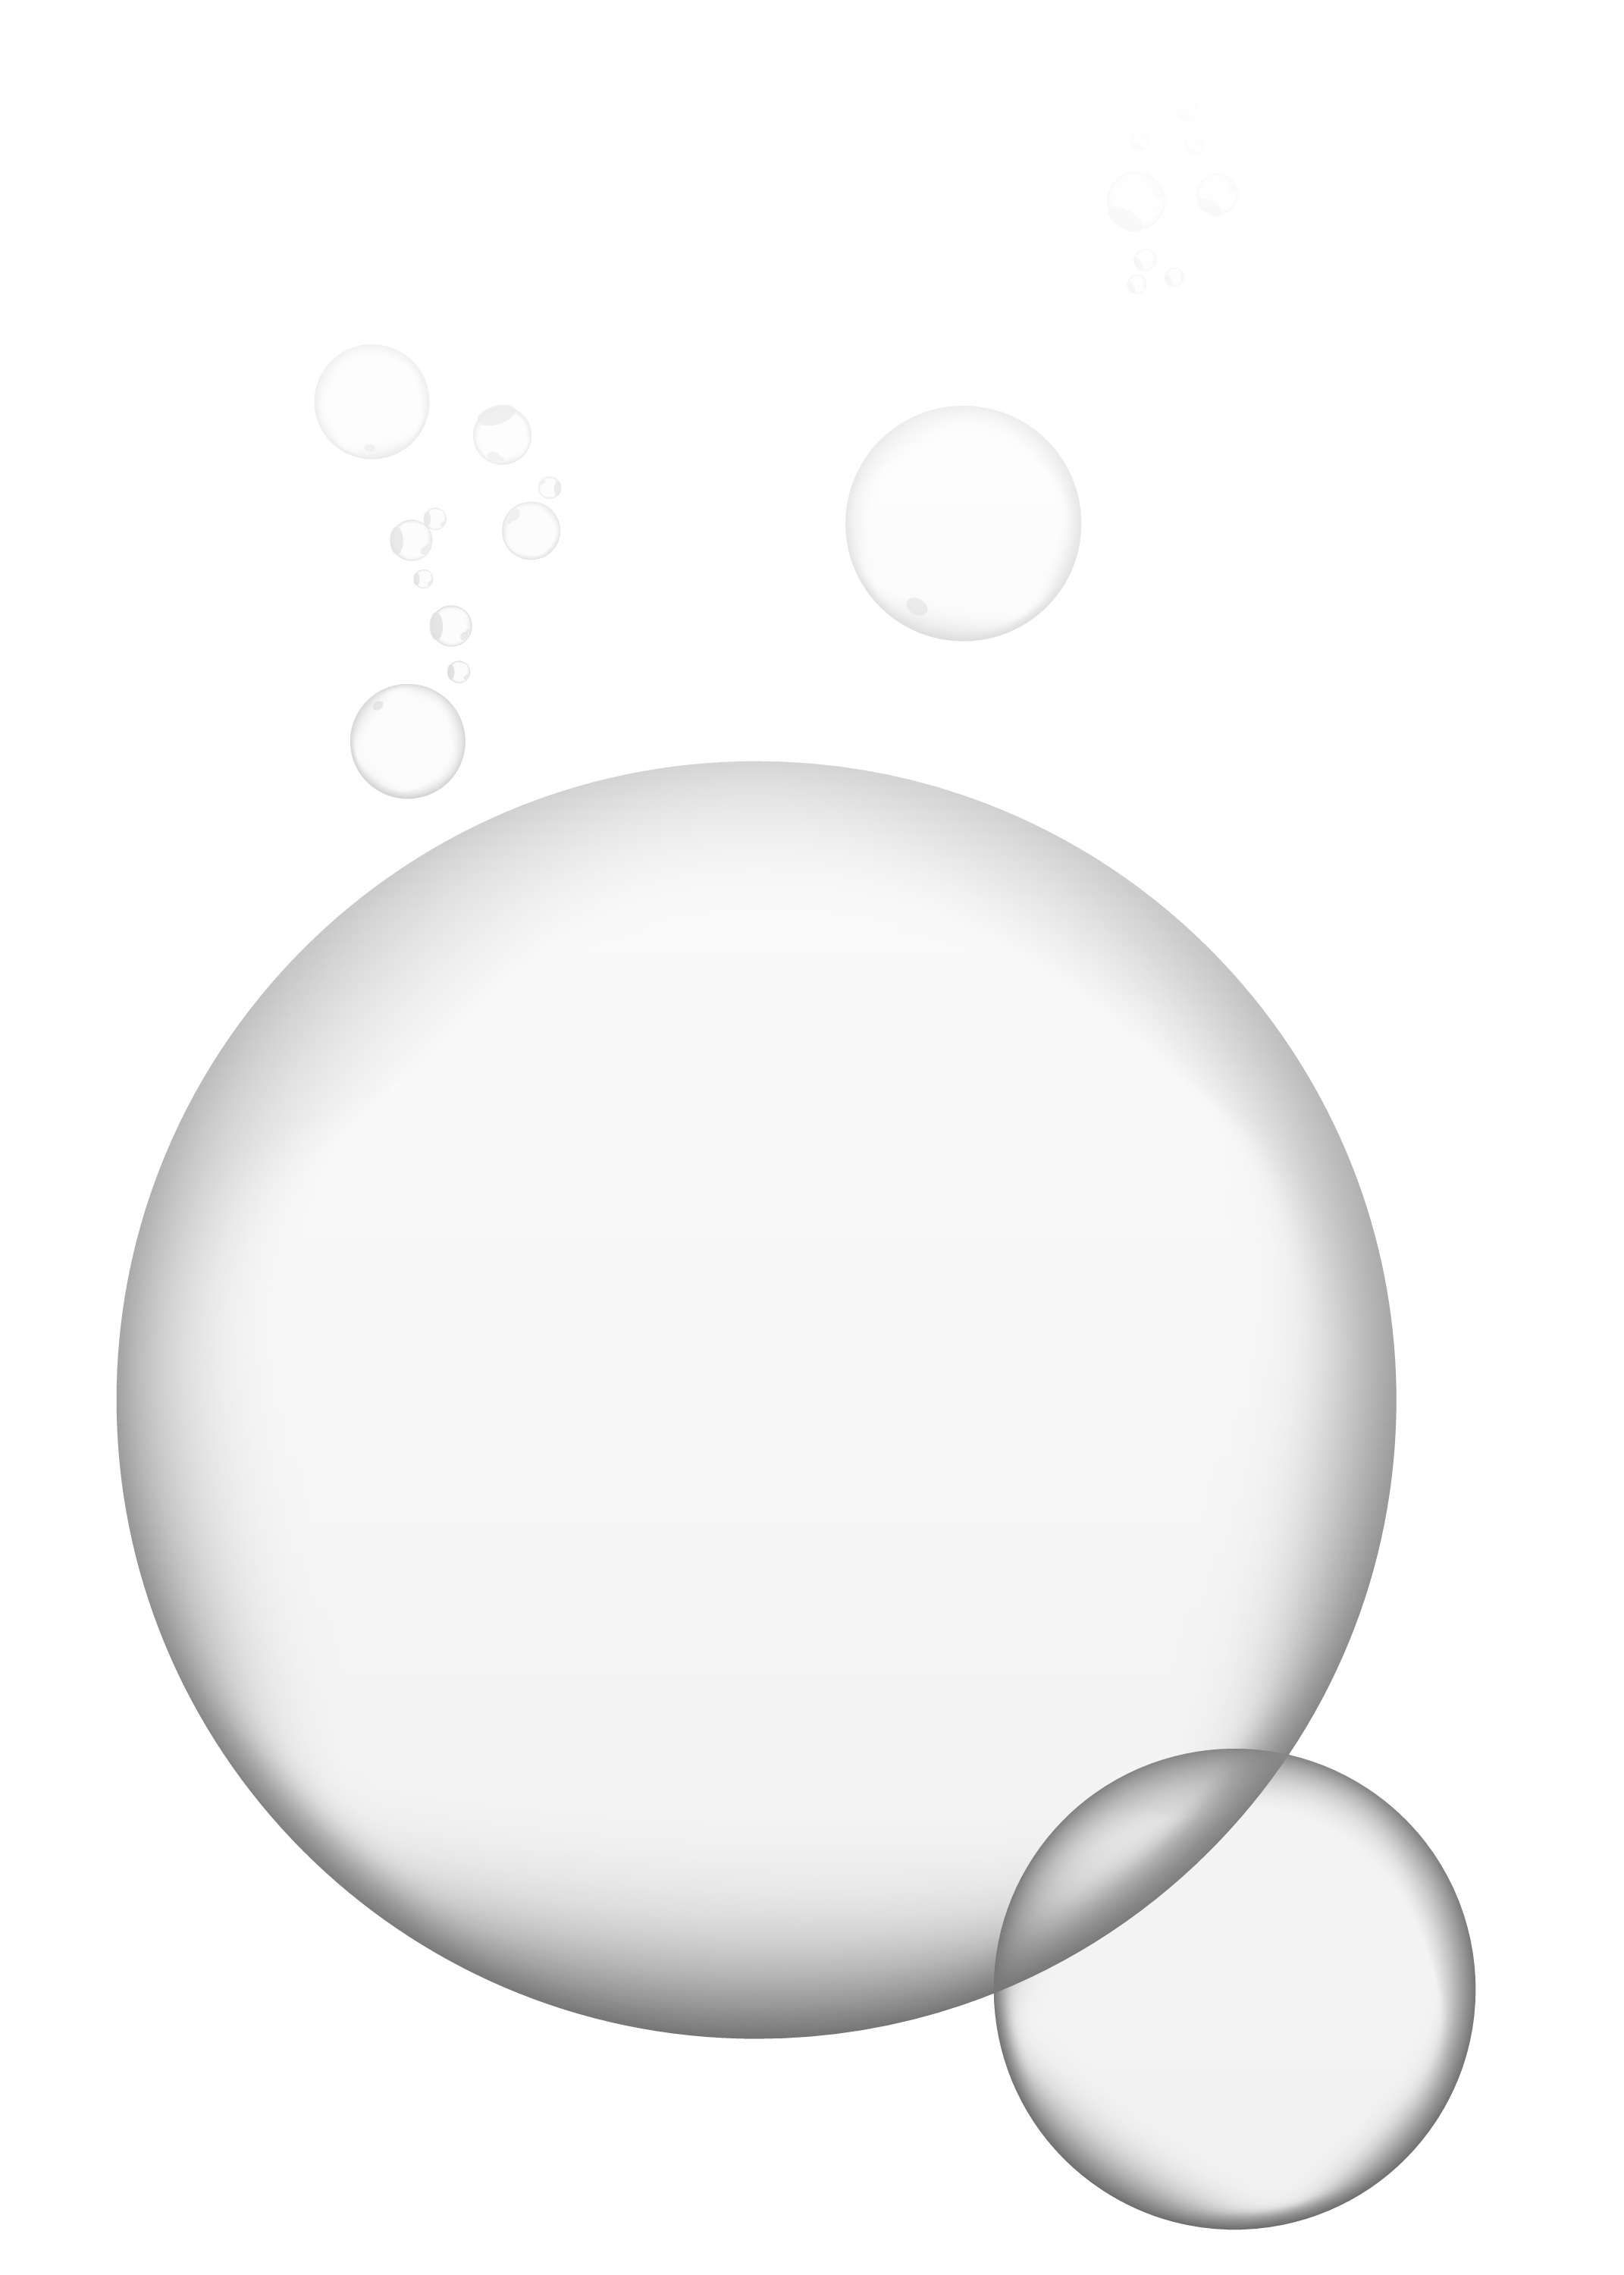 bubbles png transparent image pngpix #22519